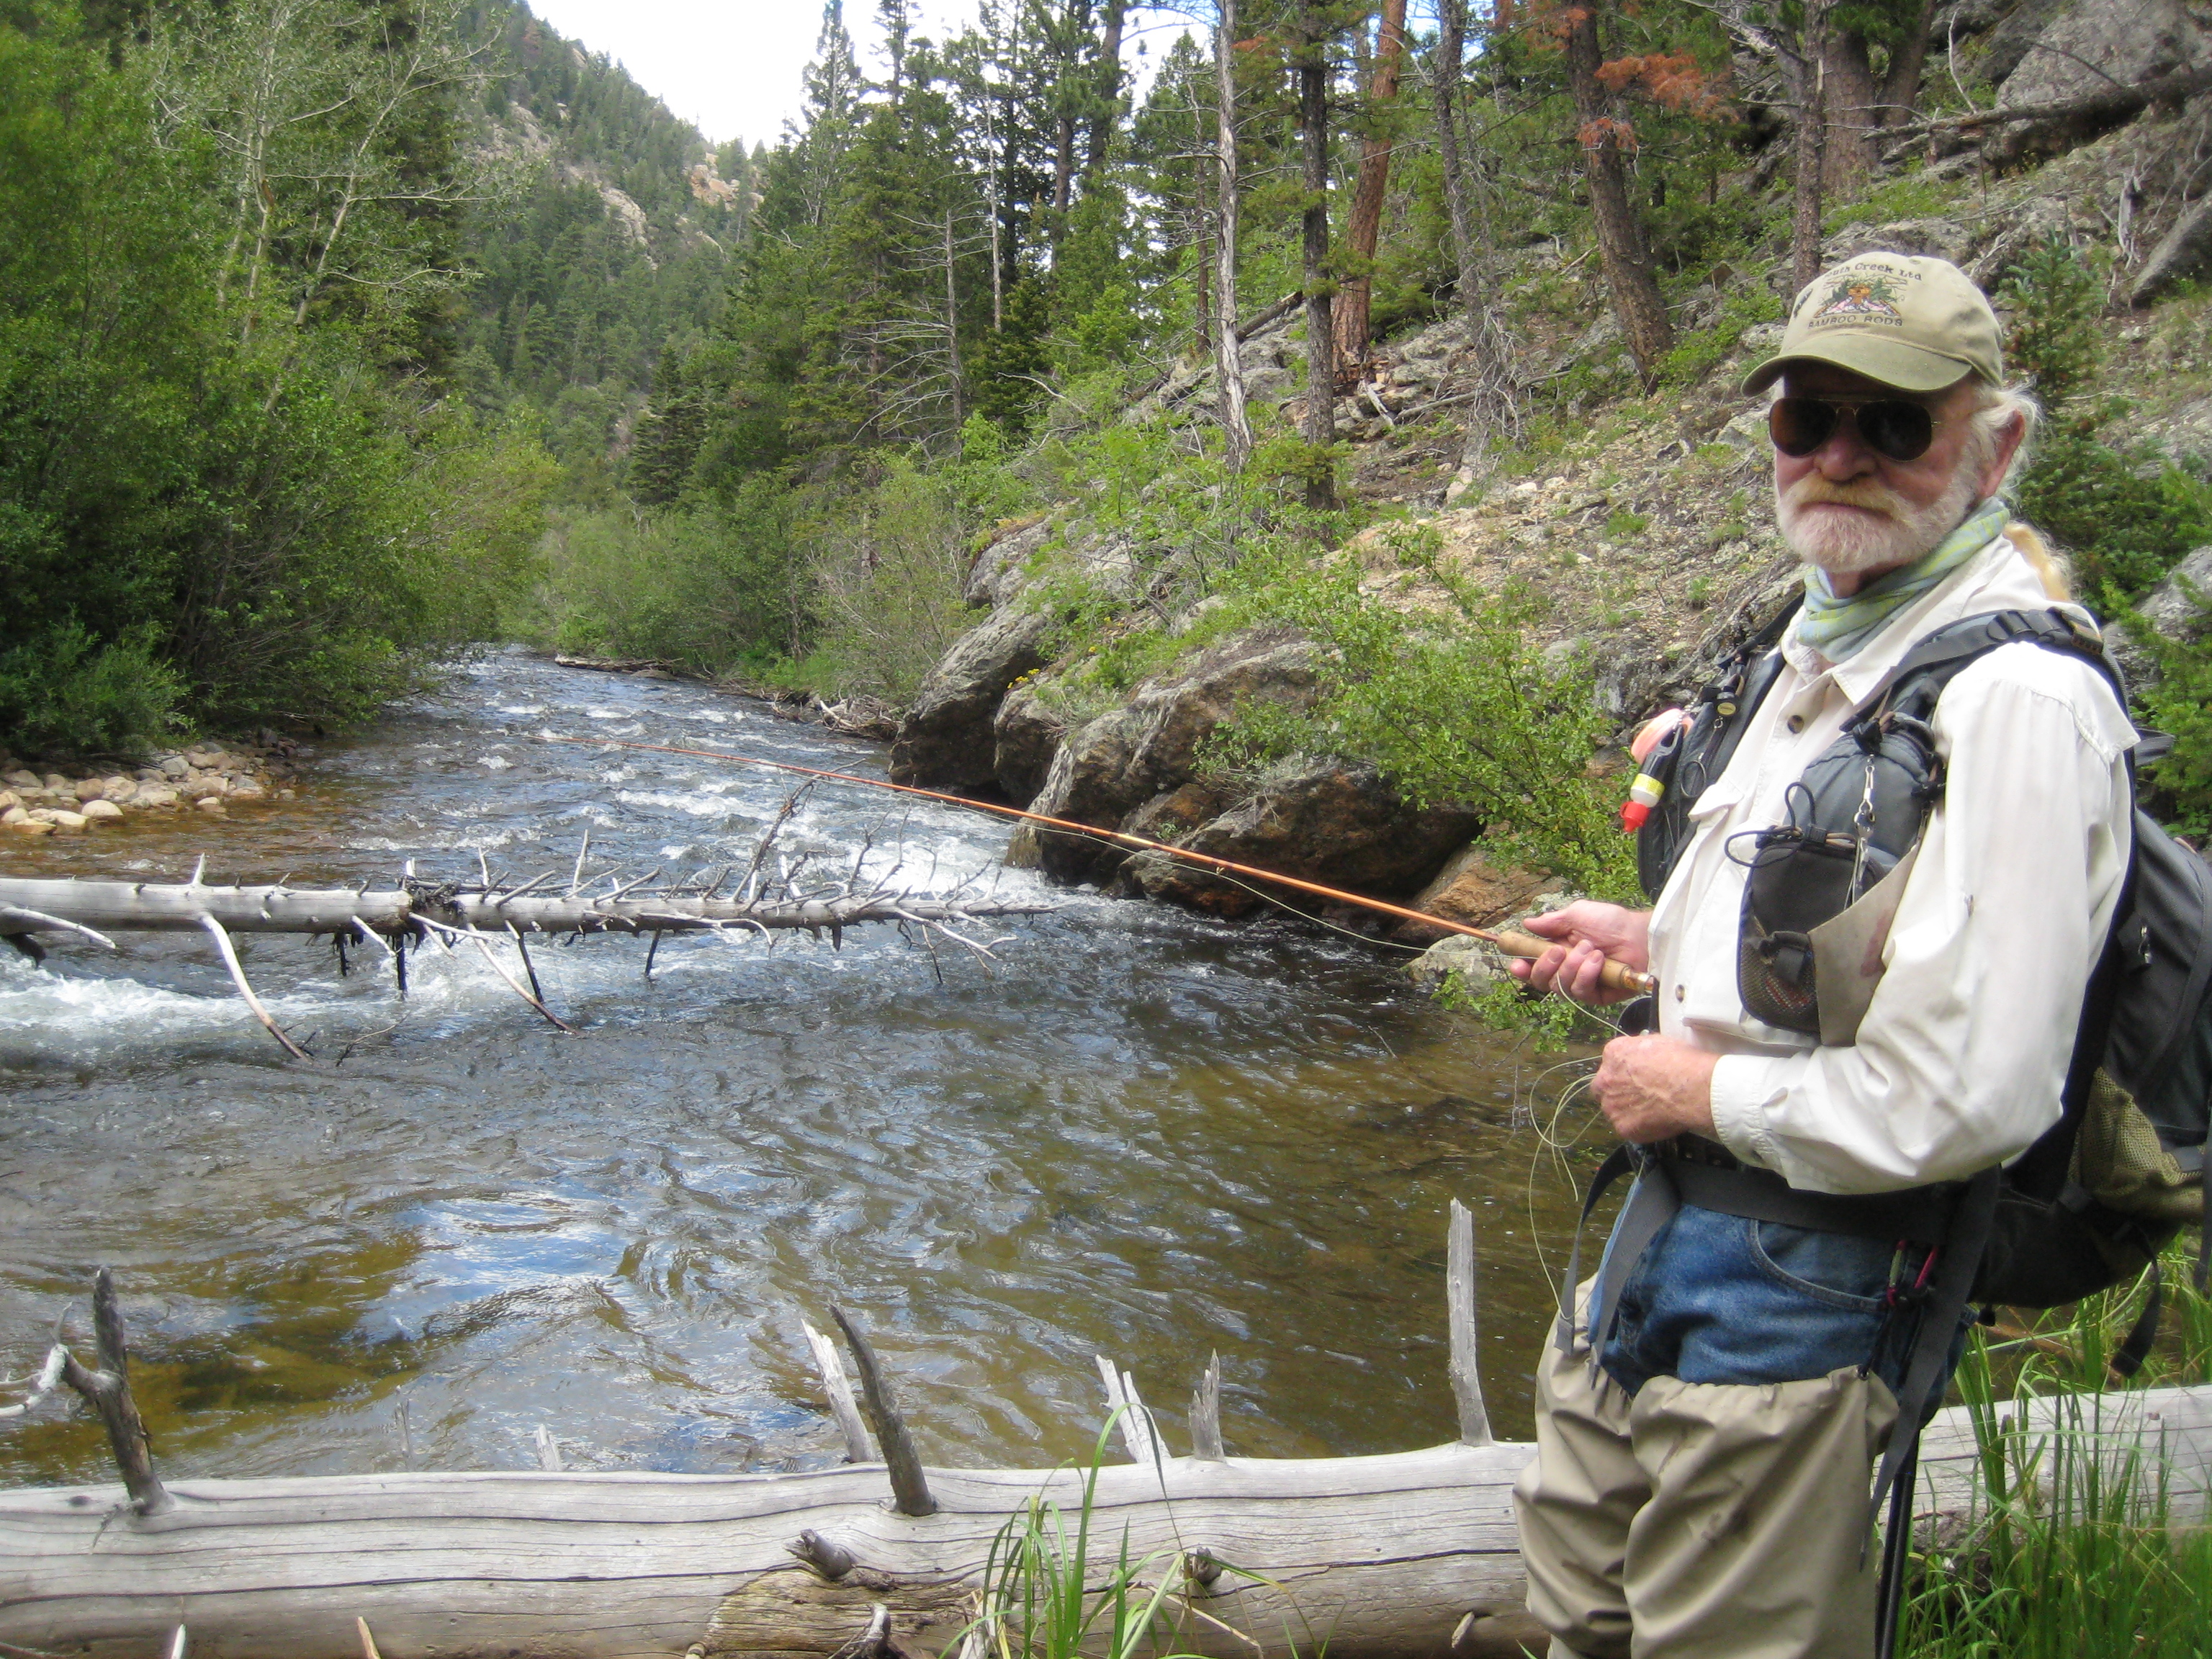 I Have Been Making Traditional Six Sided Split Bamboo Fly Fishing Rods Since 1979 Began In A Garage Heated By Wood Stove Here Northern Colorado